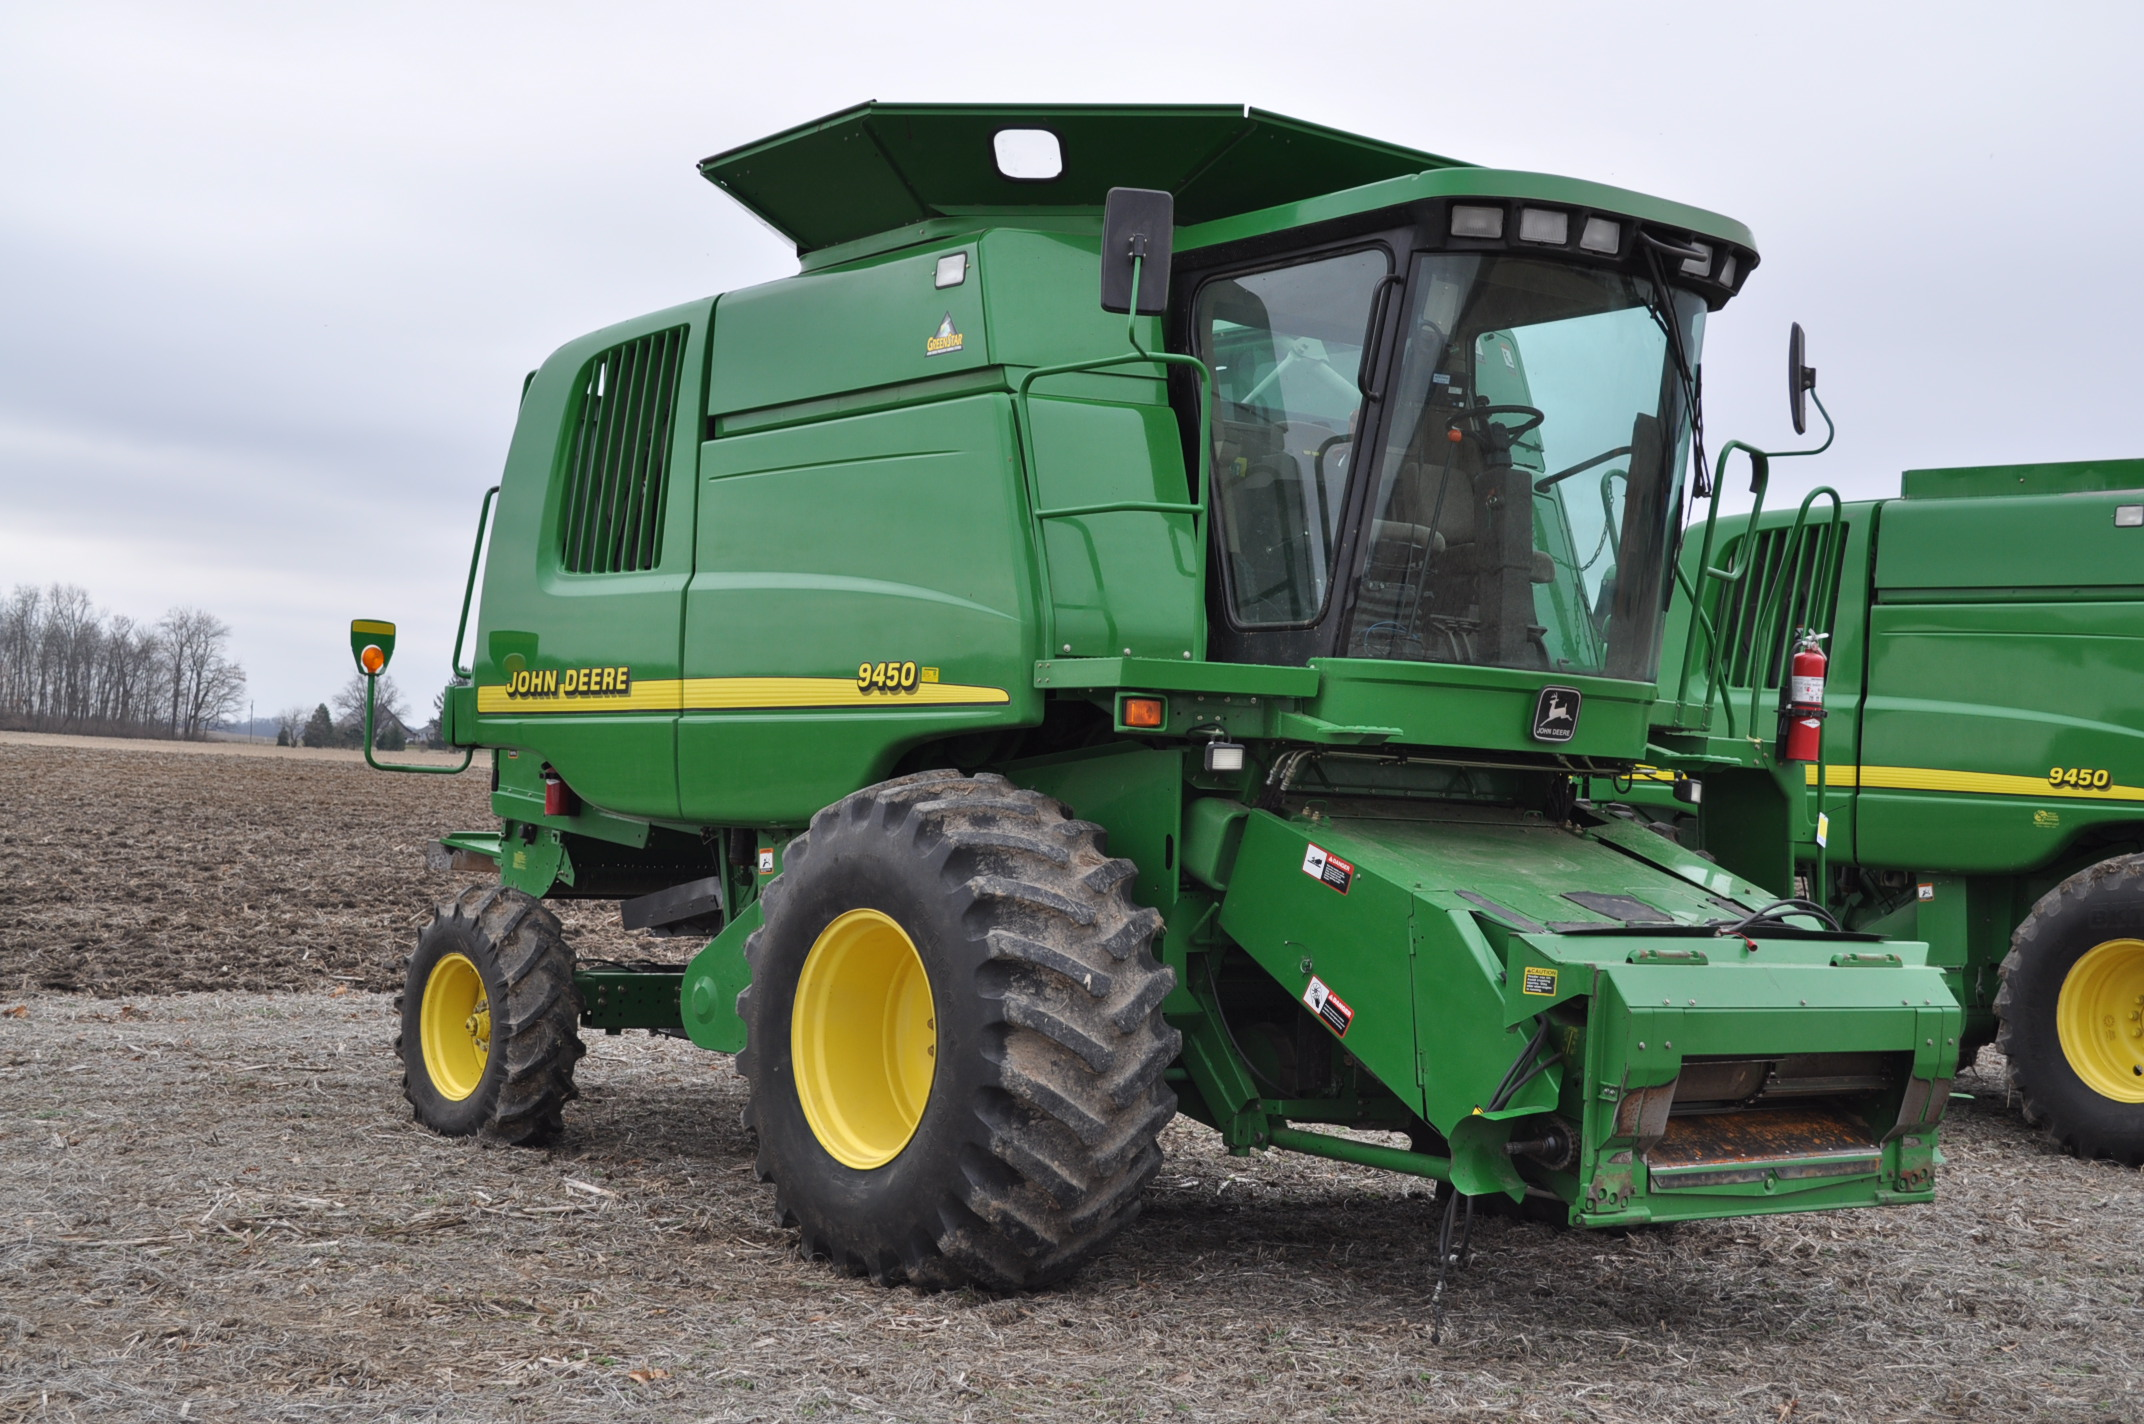 John Deere 9450 combine, 30.5-L32 drive, NEW 14.9-24 rear, chopper, chaff spreader, Mauer bin - Image 4 of 24